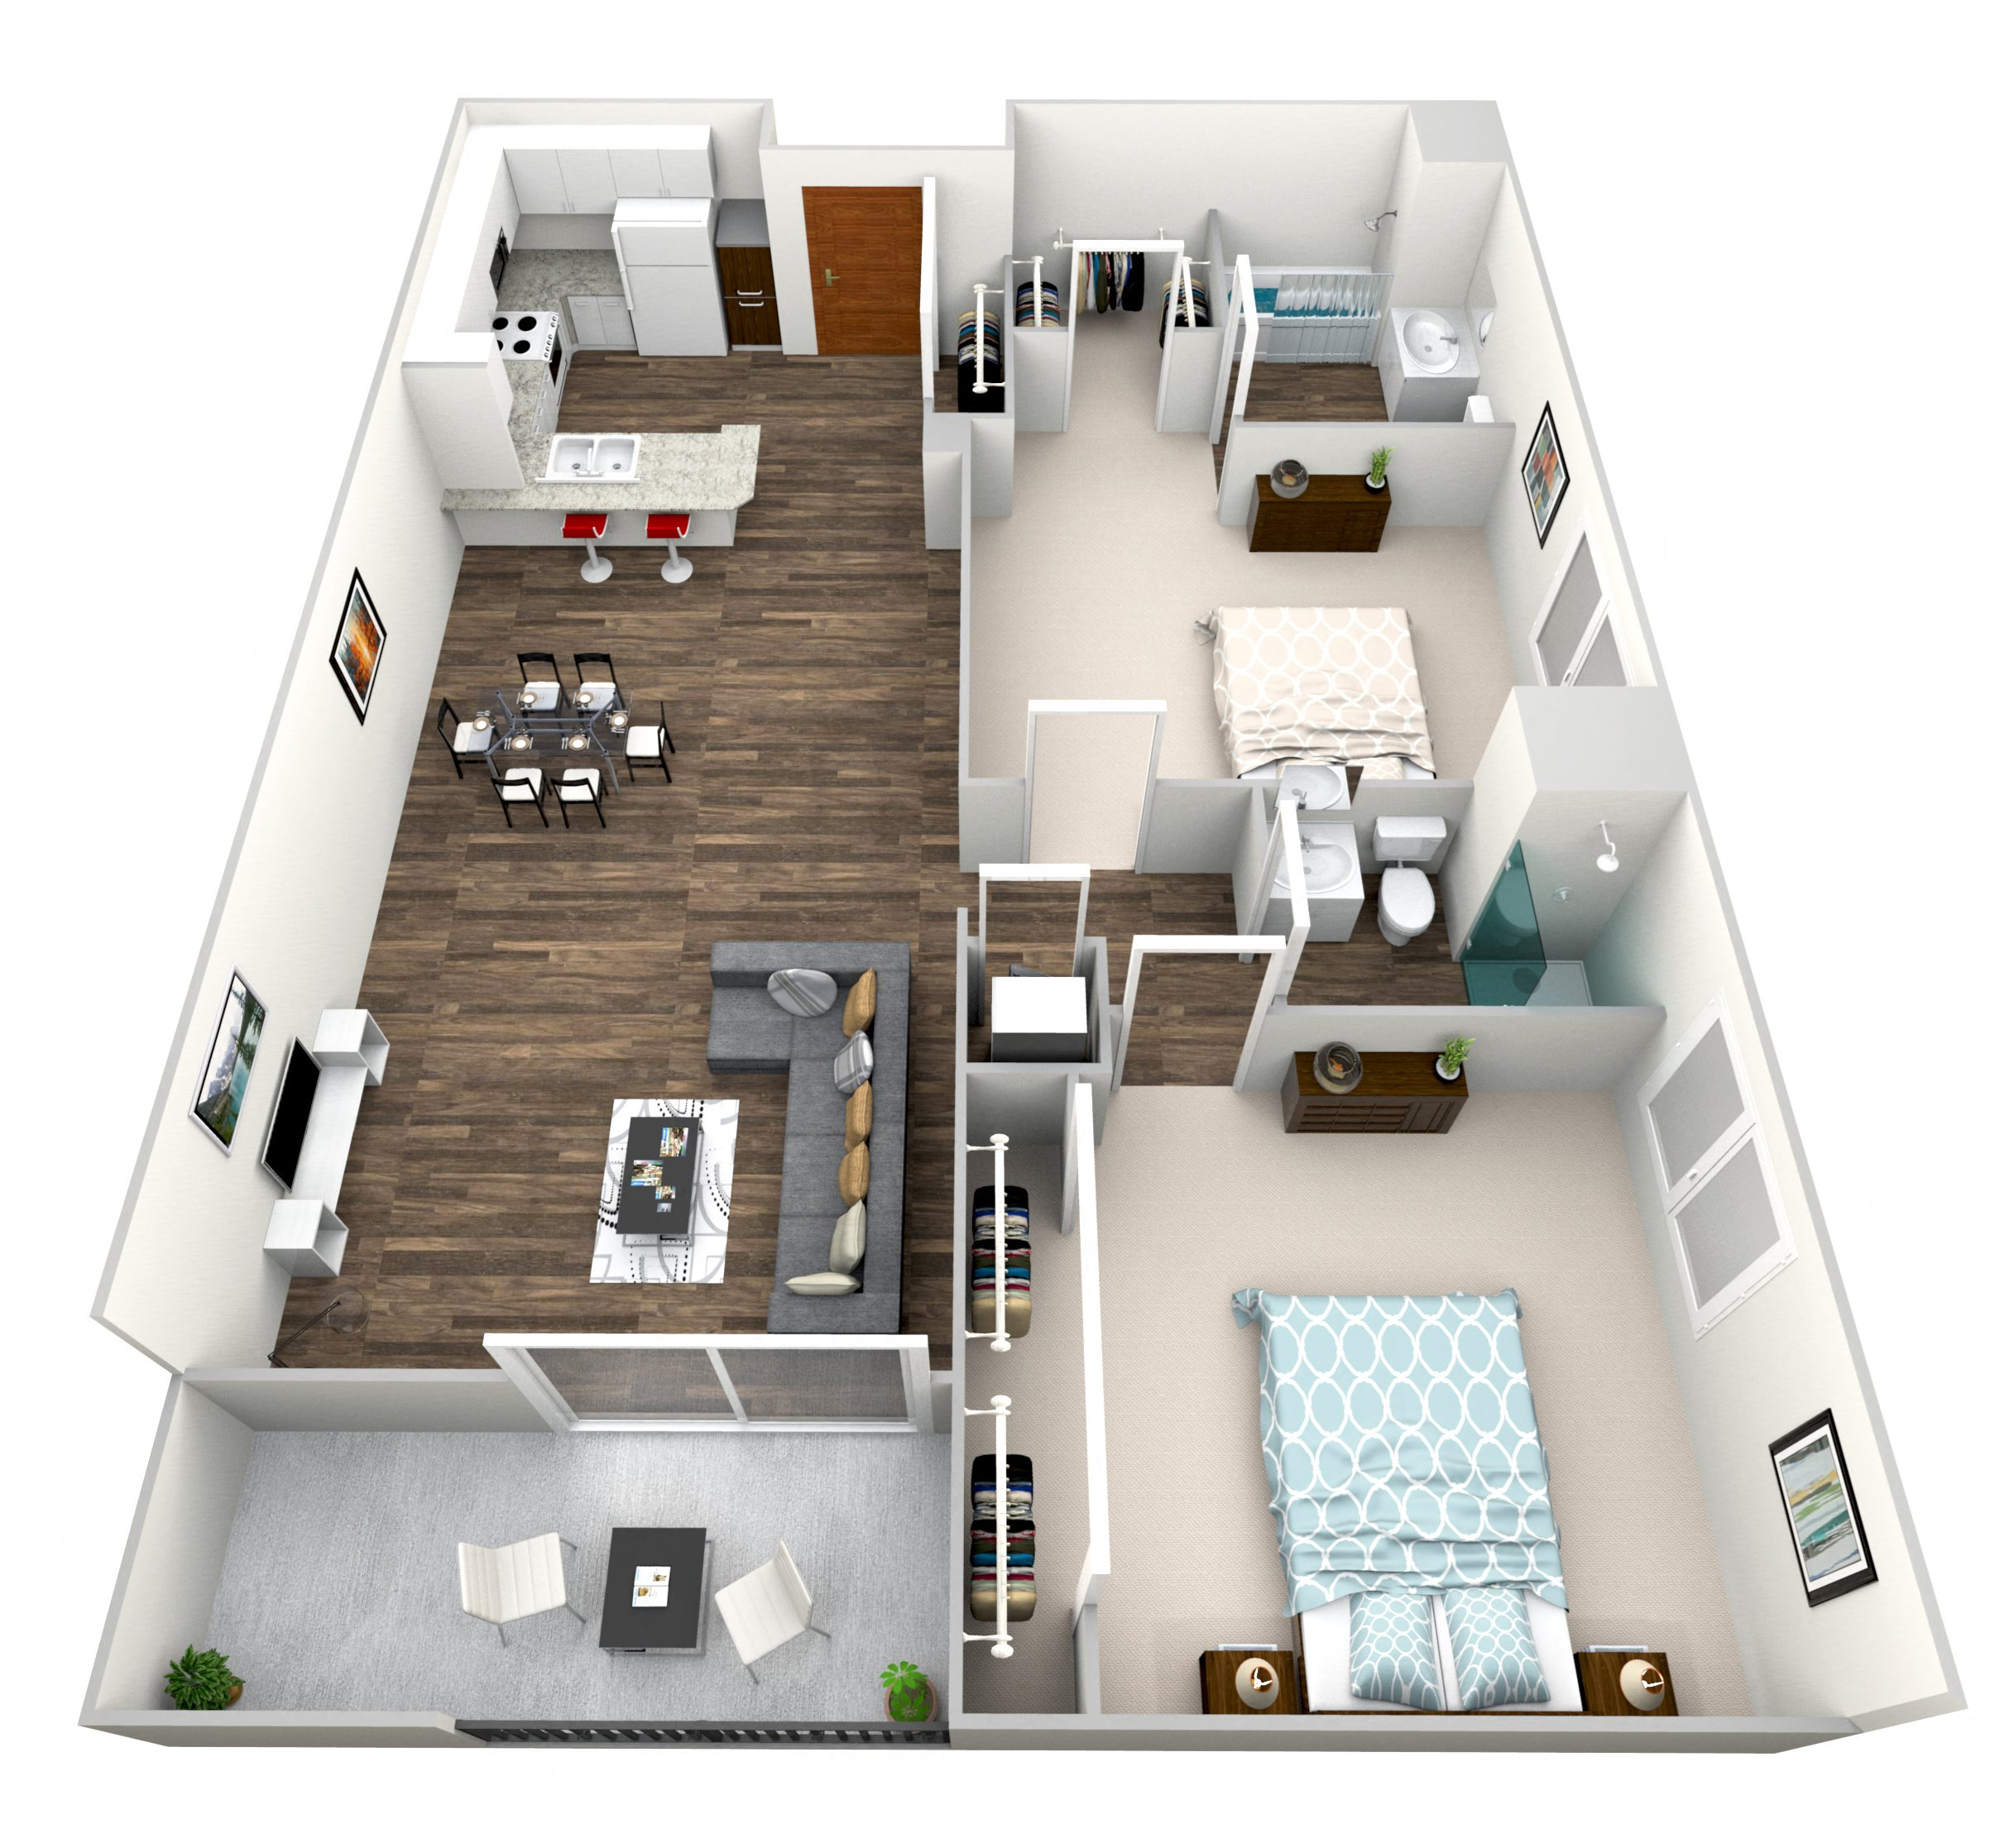 2 Bed 2 Bath H Floor Plan 8